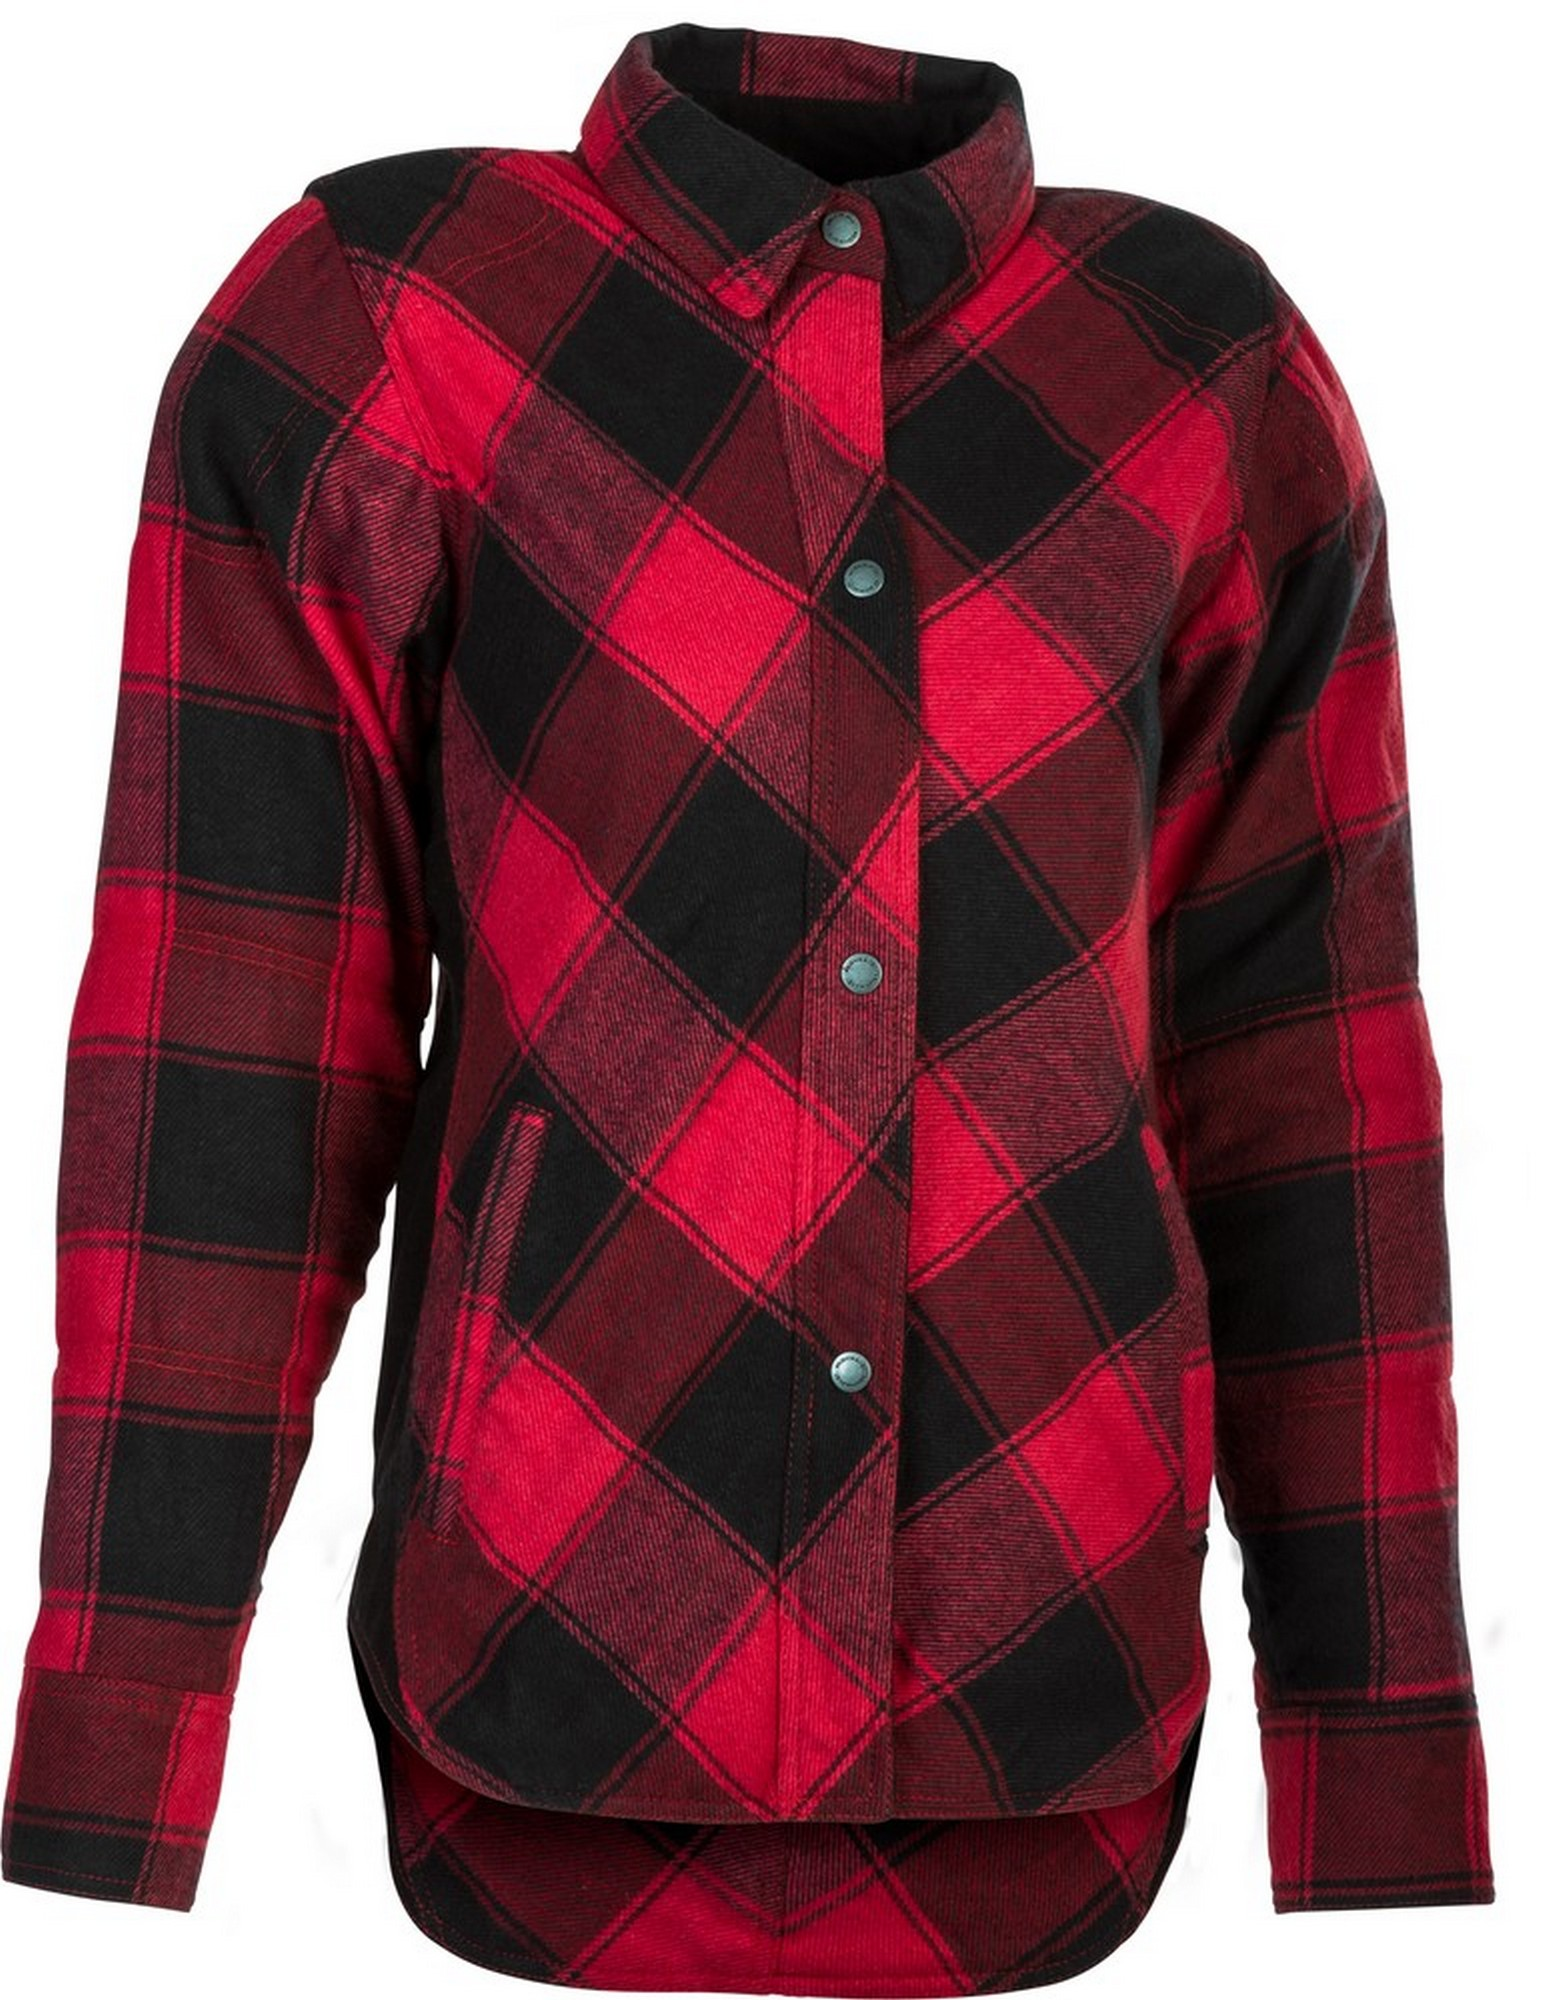 Highway 21 Marksman Mens Motorcycle Long Sleeve Flannel Shirt W//CE Armors//PE Back Armor Black//Red Size 2XL